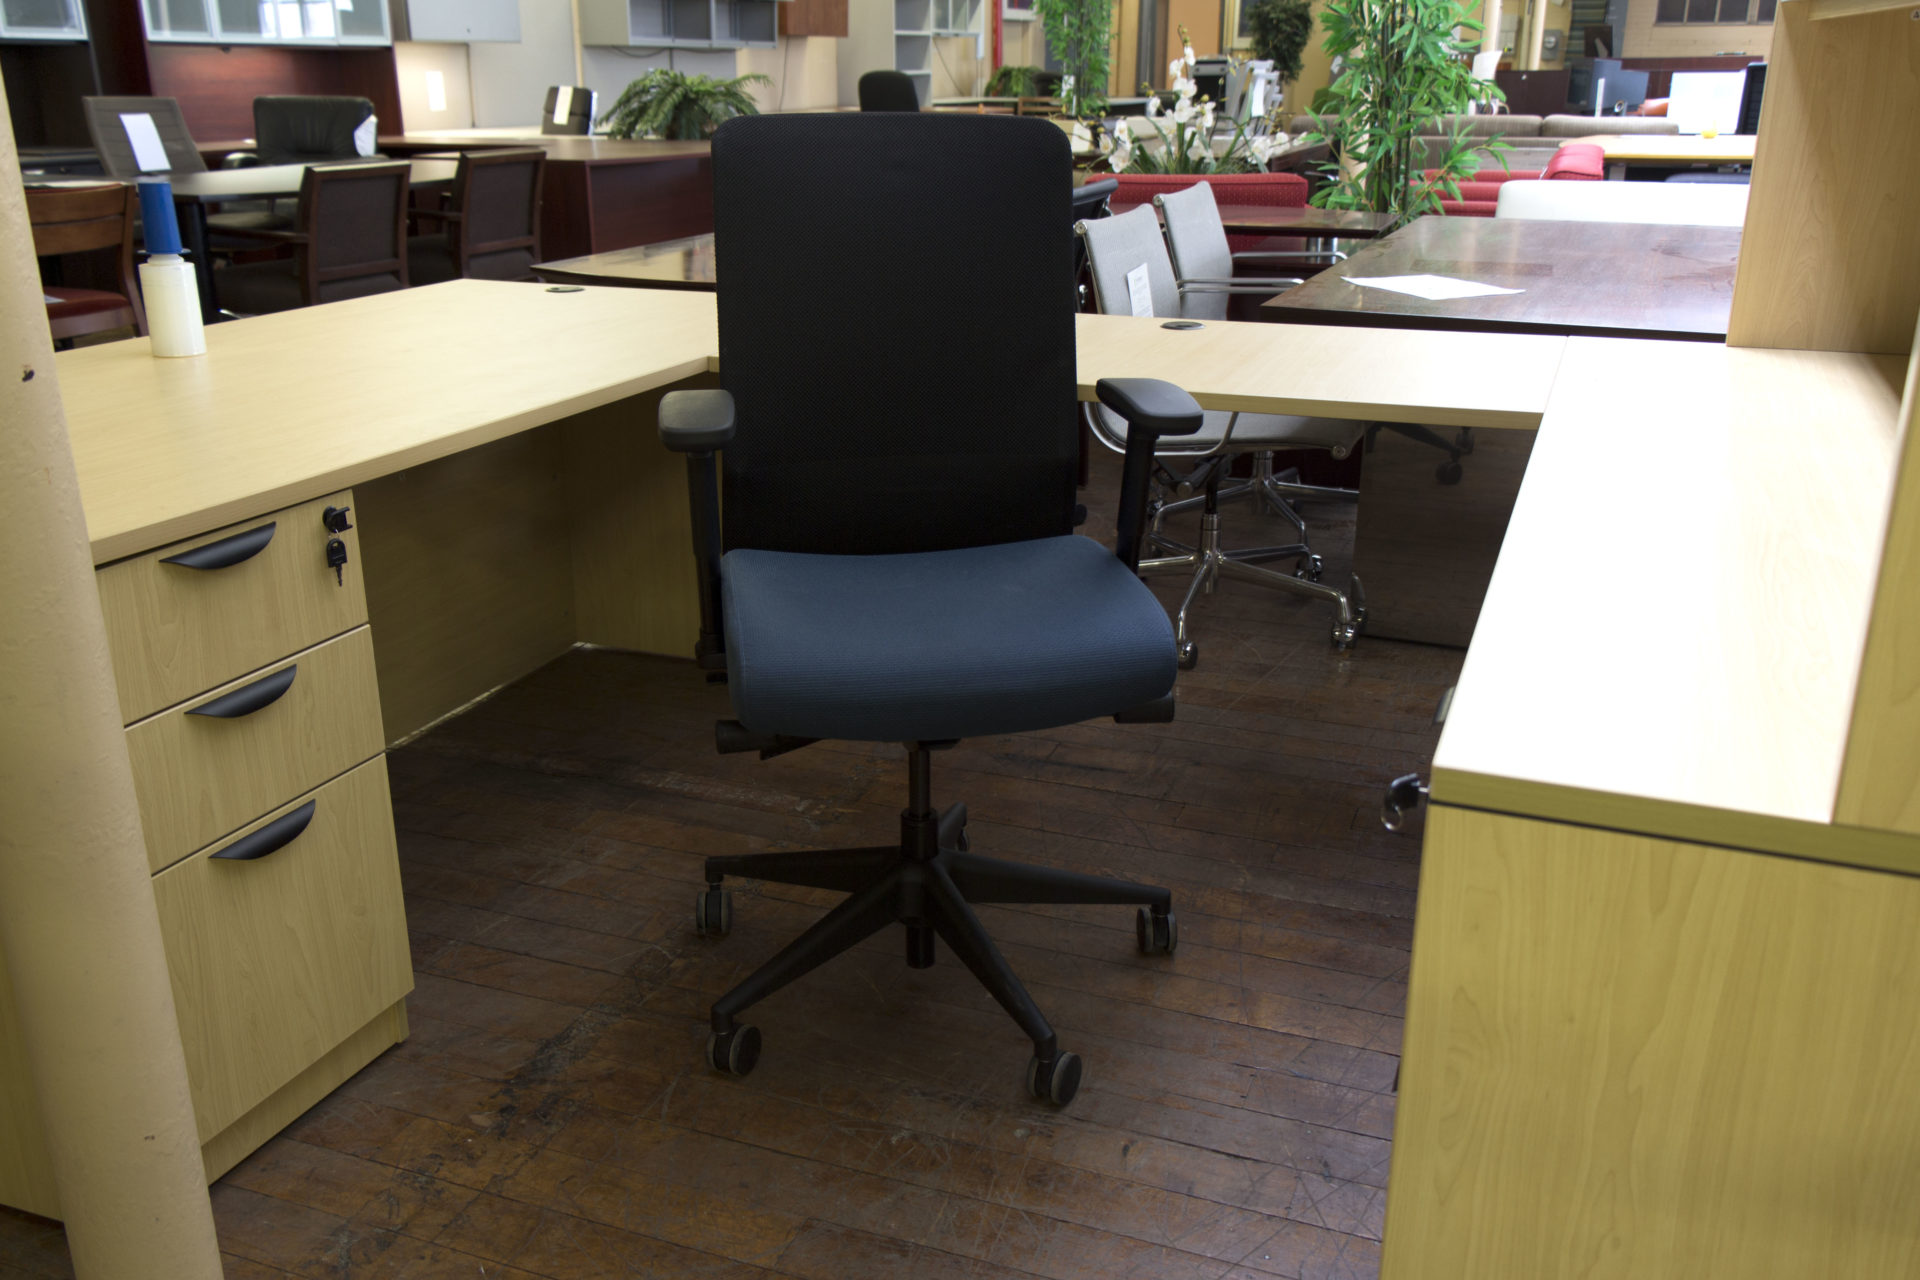 peartreeofficefurniture_peartreeofficefurniture_mg_5529.jpg